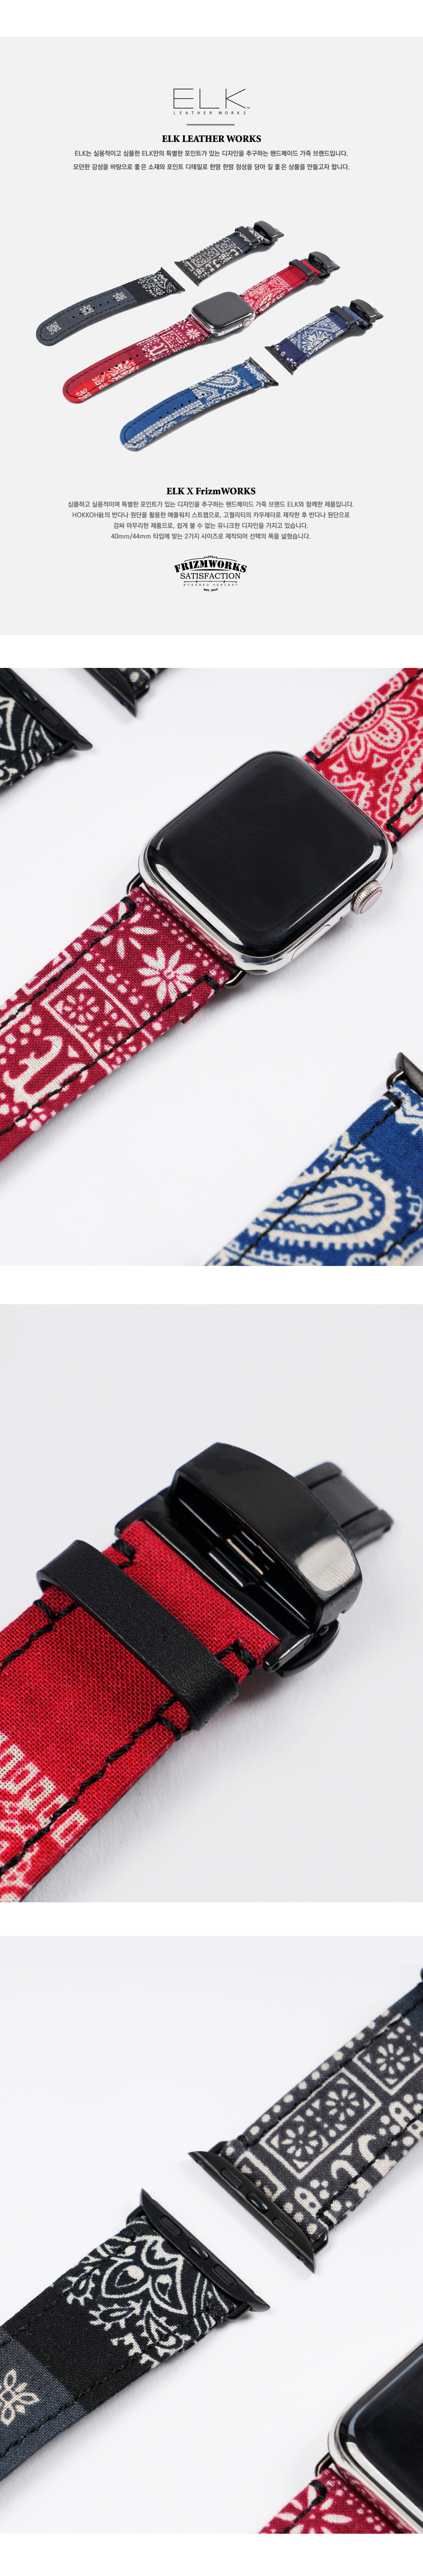 프리즘웍스(FRIZMWORKS) [FWS X ELK] BANDANA APPLE WATCH STRAP _ BLUE